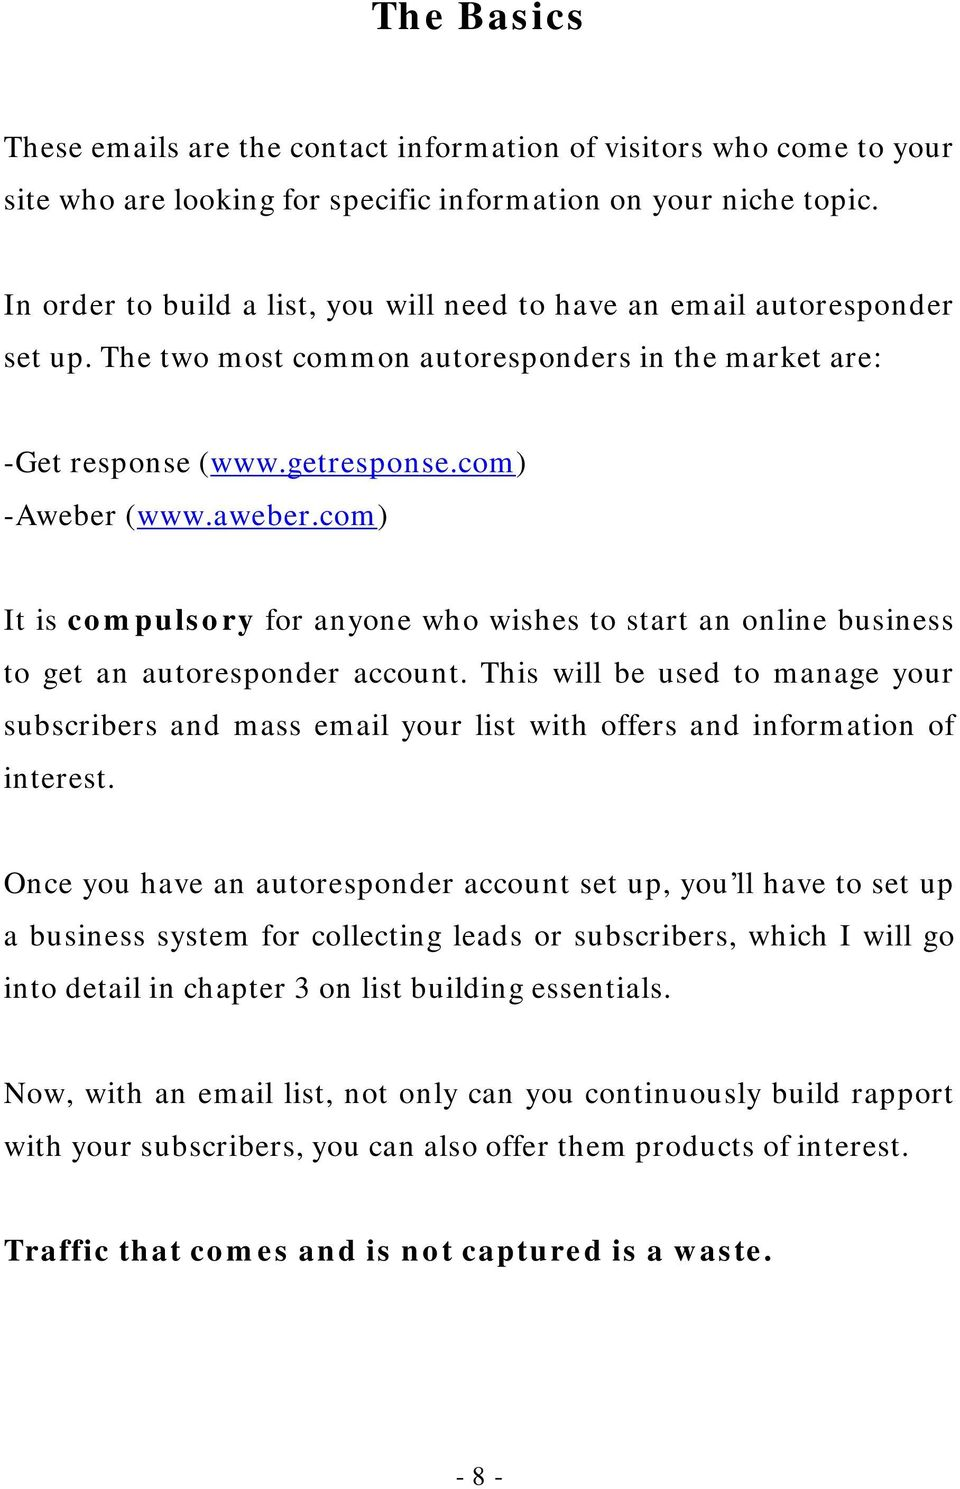 com) It is compulsory for anyone who wishes to start an online business to get an autoresponder account.